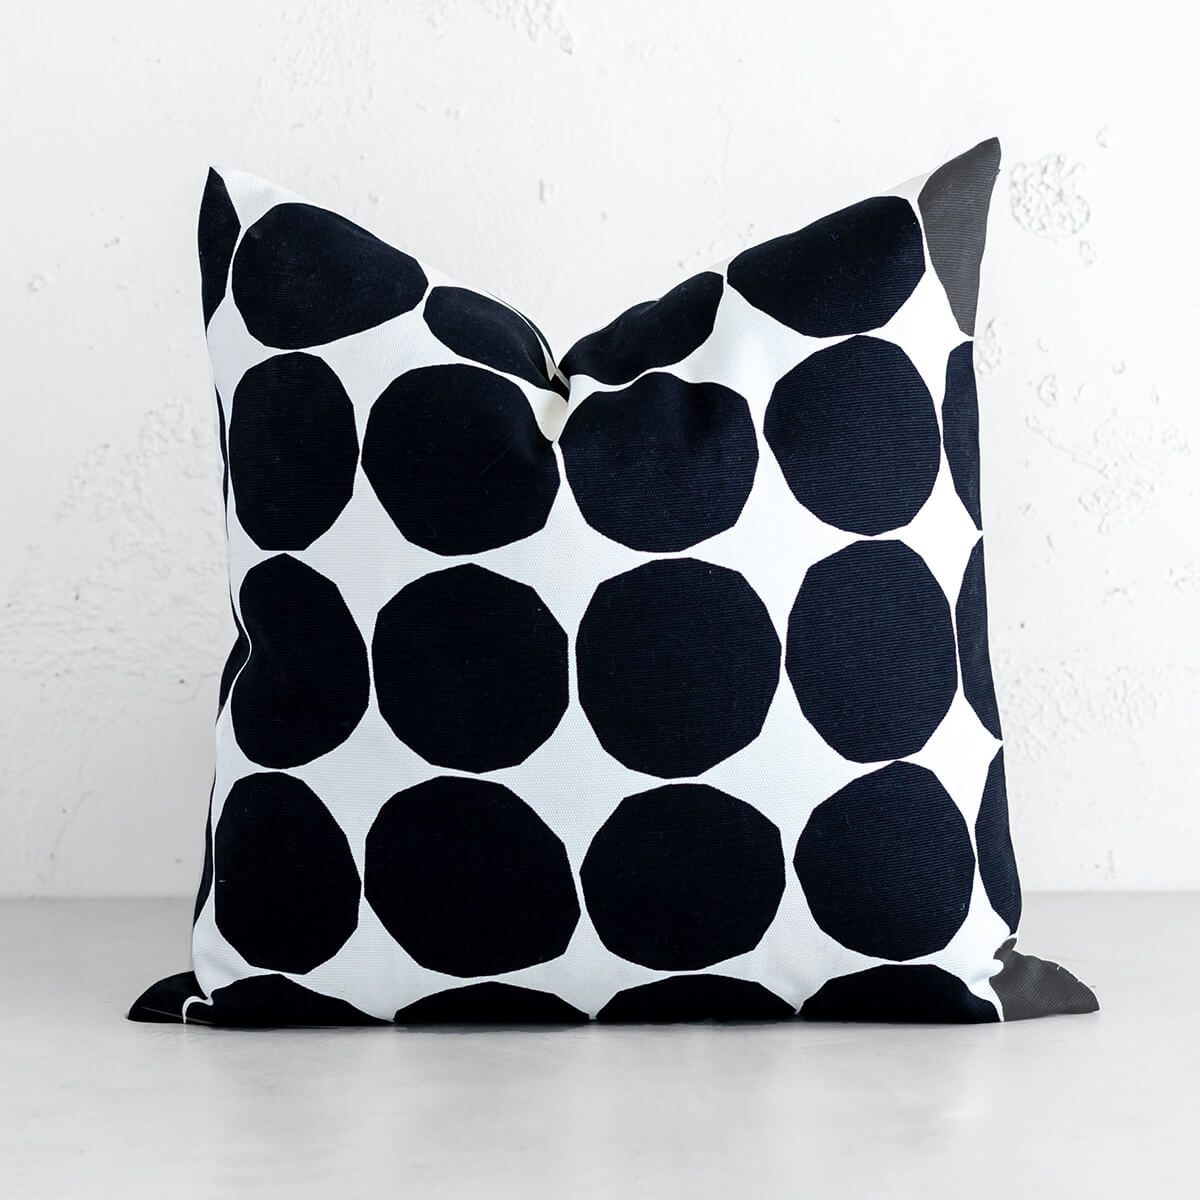 MARIMEKKO  |  PIENET KIVET CUSHION  |  BLACK + WHITE SCATTER CUSHION